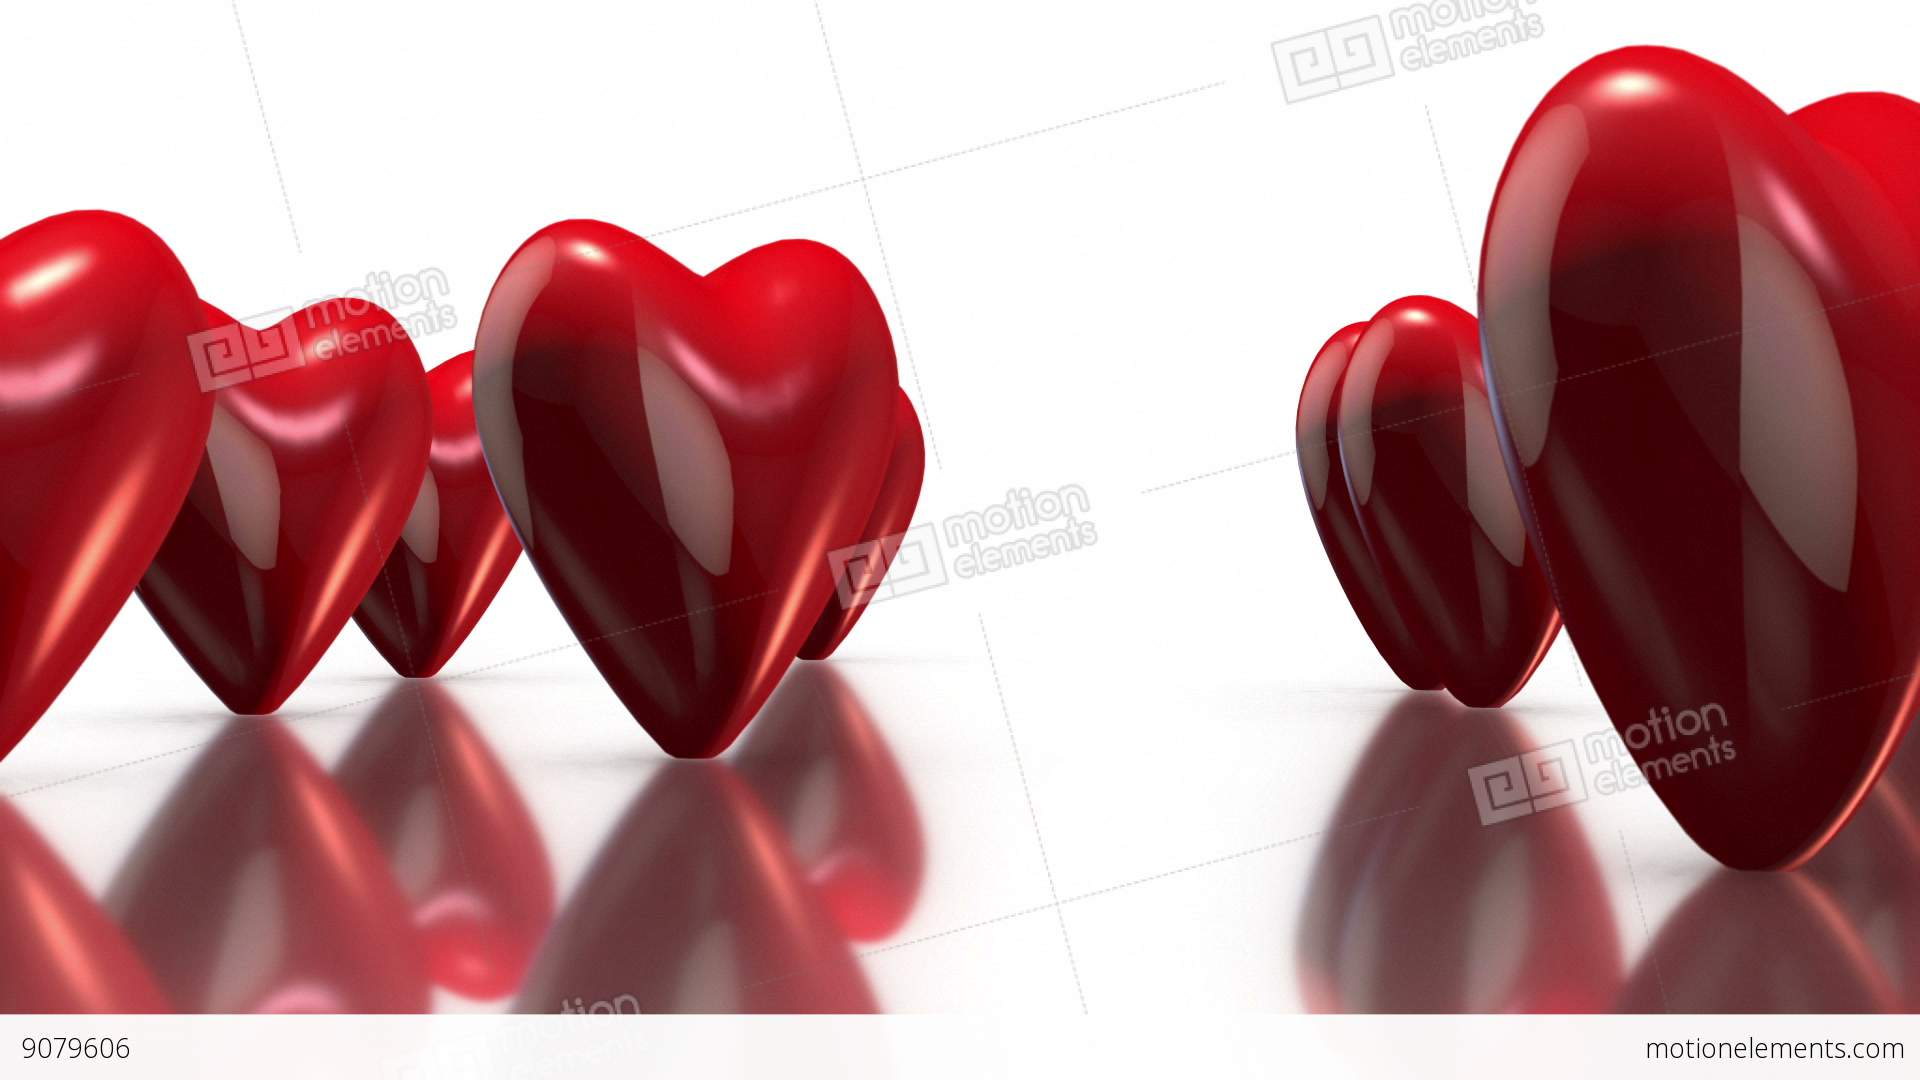 Background image rotate 90 -  Alt Video 3d Rotating Love Hearts In White Background